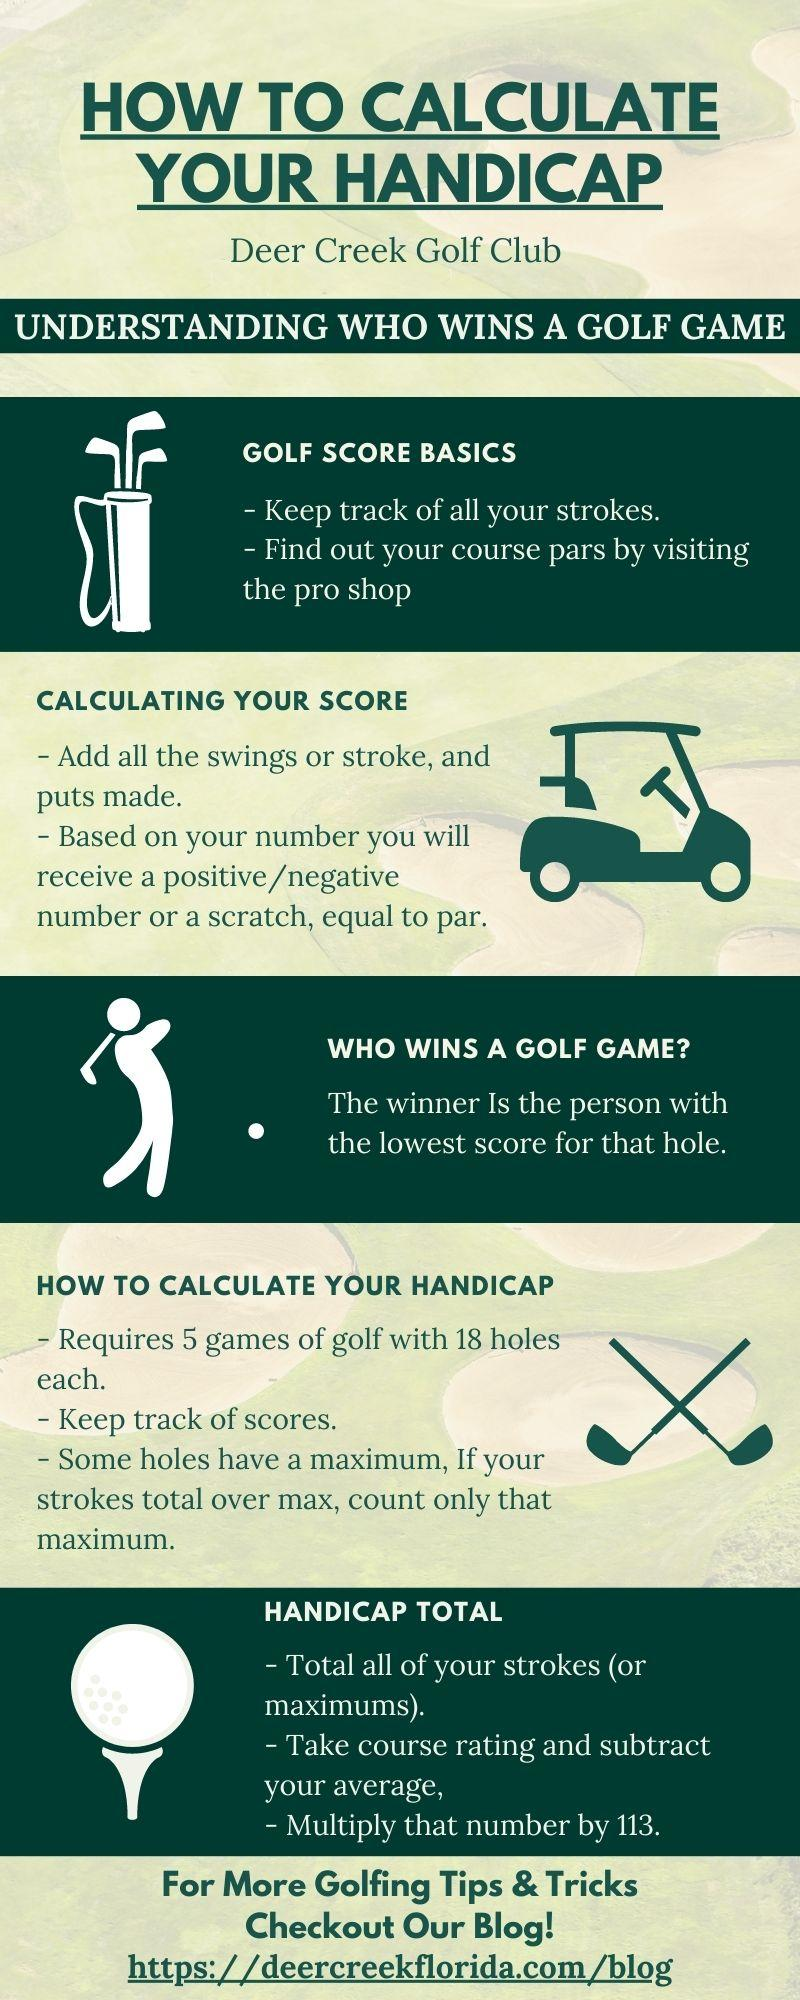 how to calculate your handicap infographic